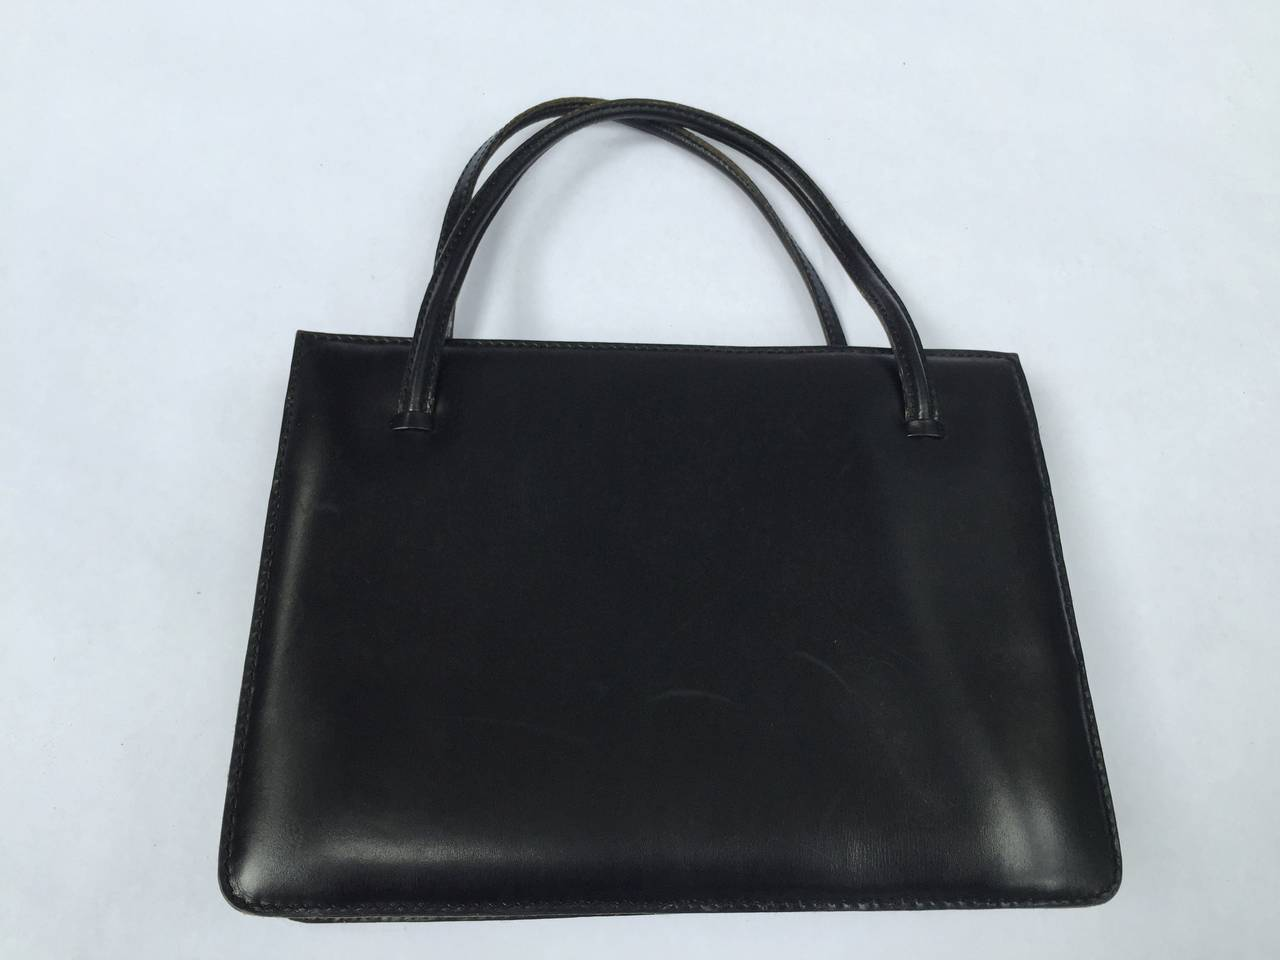 Loewe 60s black leather handbag. 4